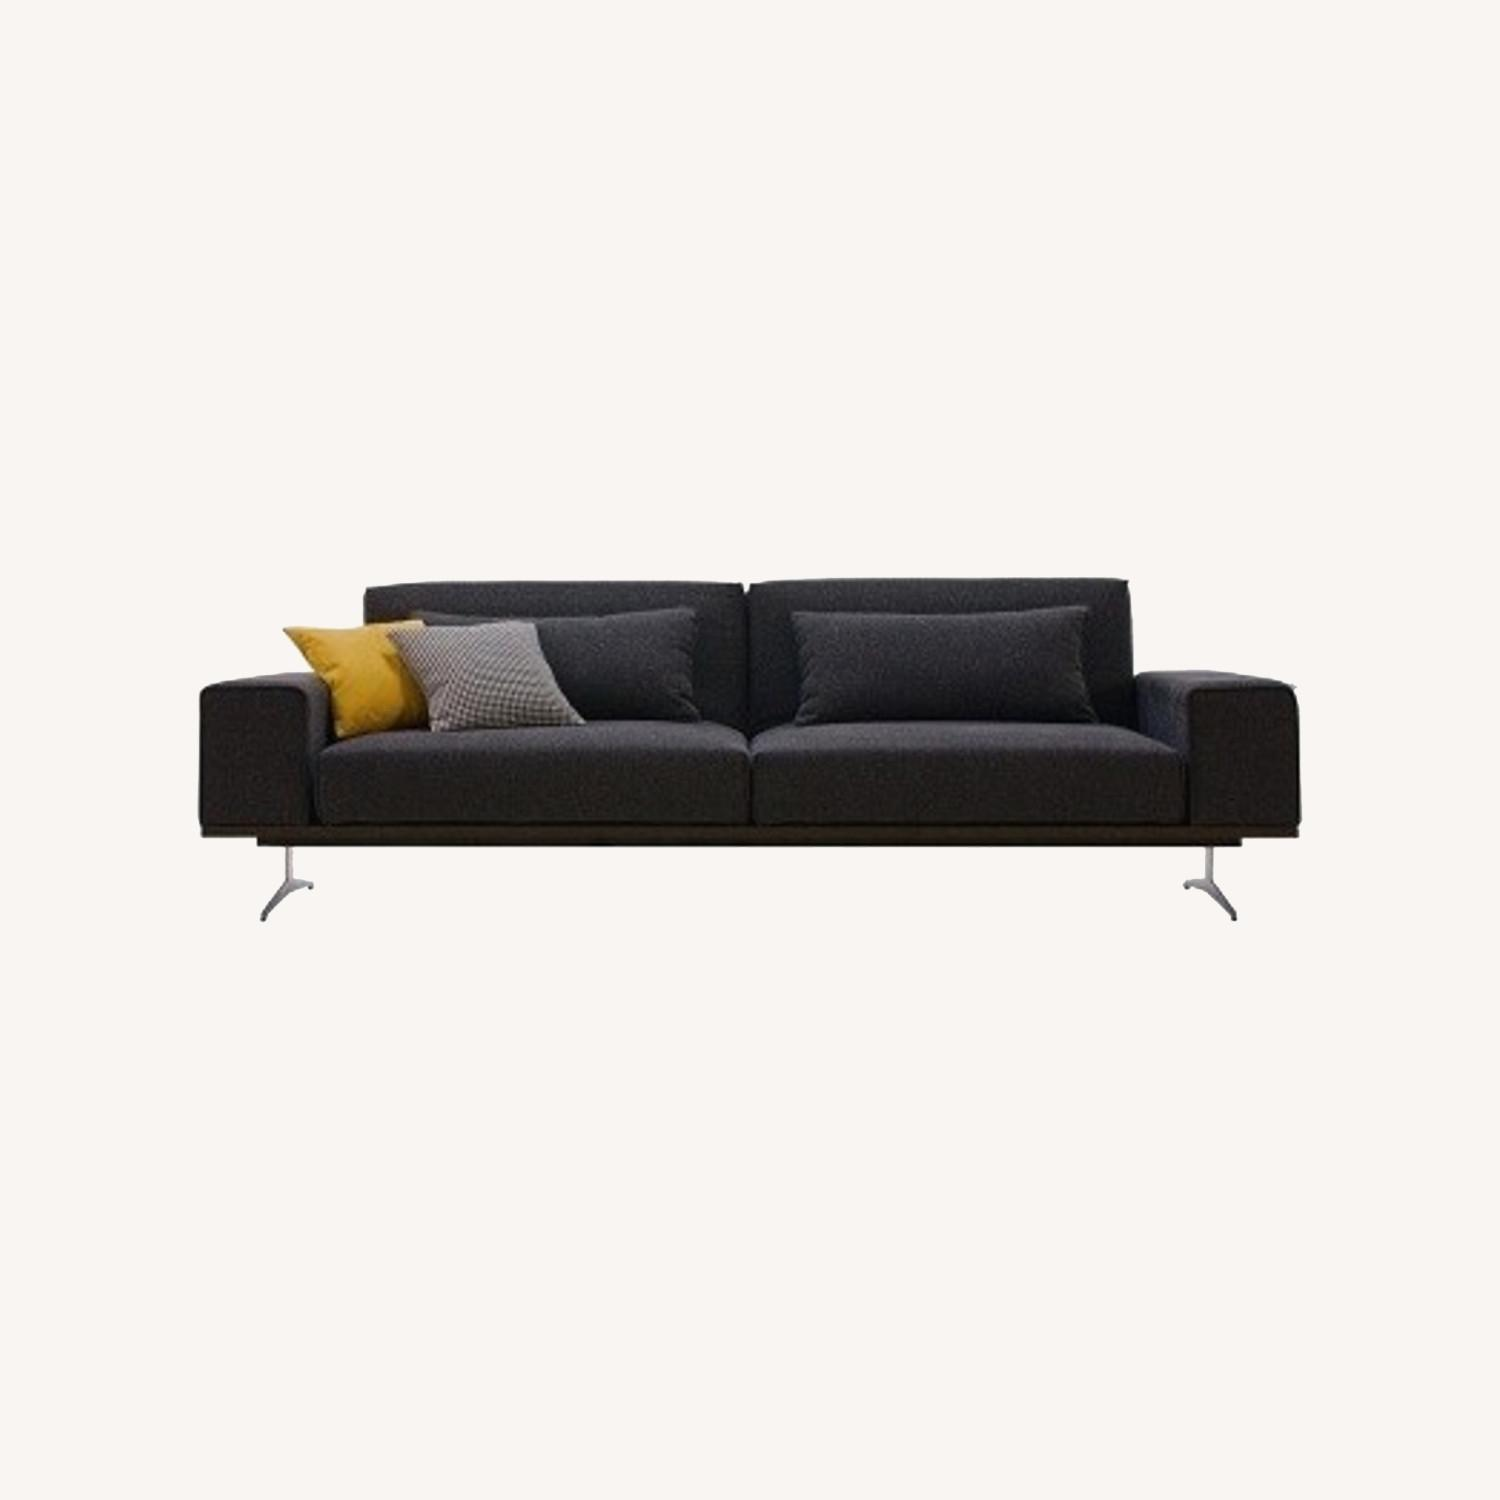 Wide Sofa Bed In Black Fabric Upholstery - image-3